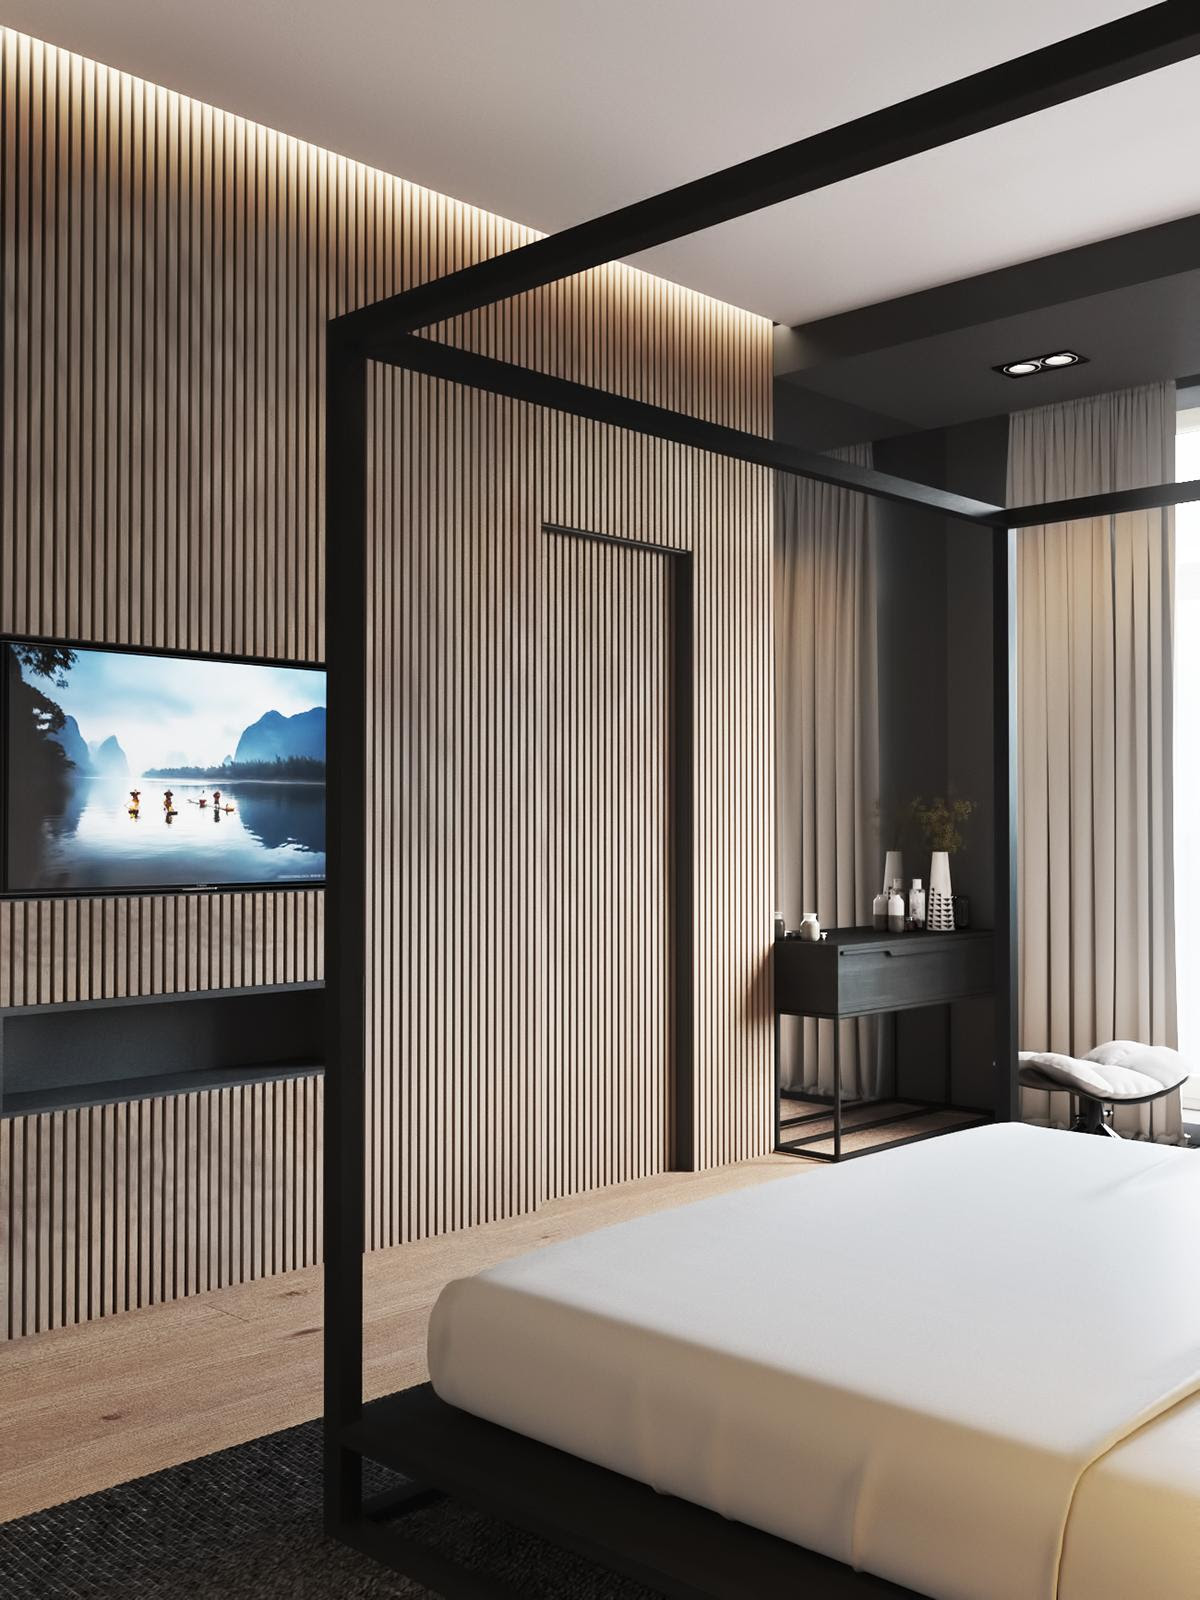 4 Luxury iBedroomsi With Unique Wall Details